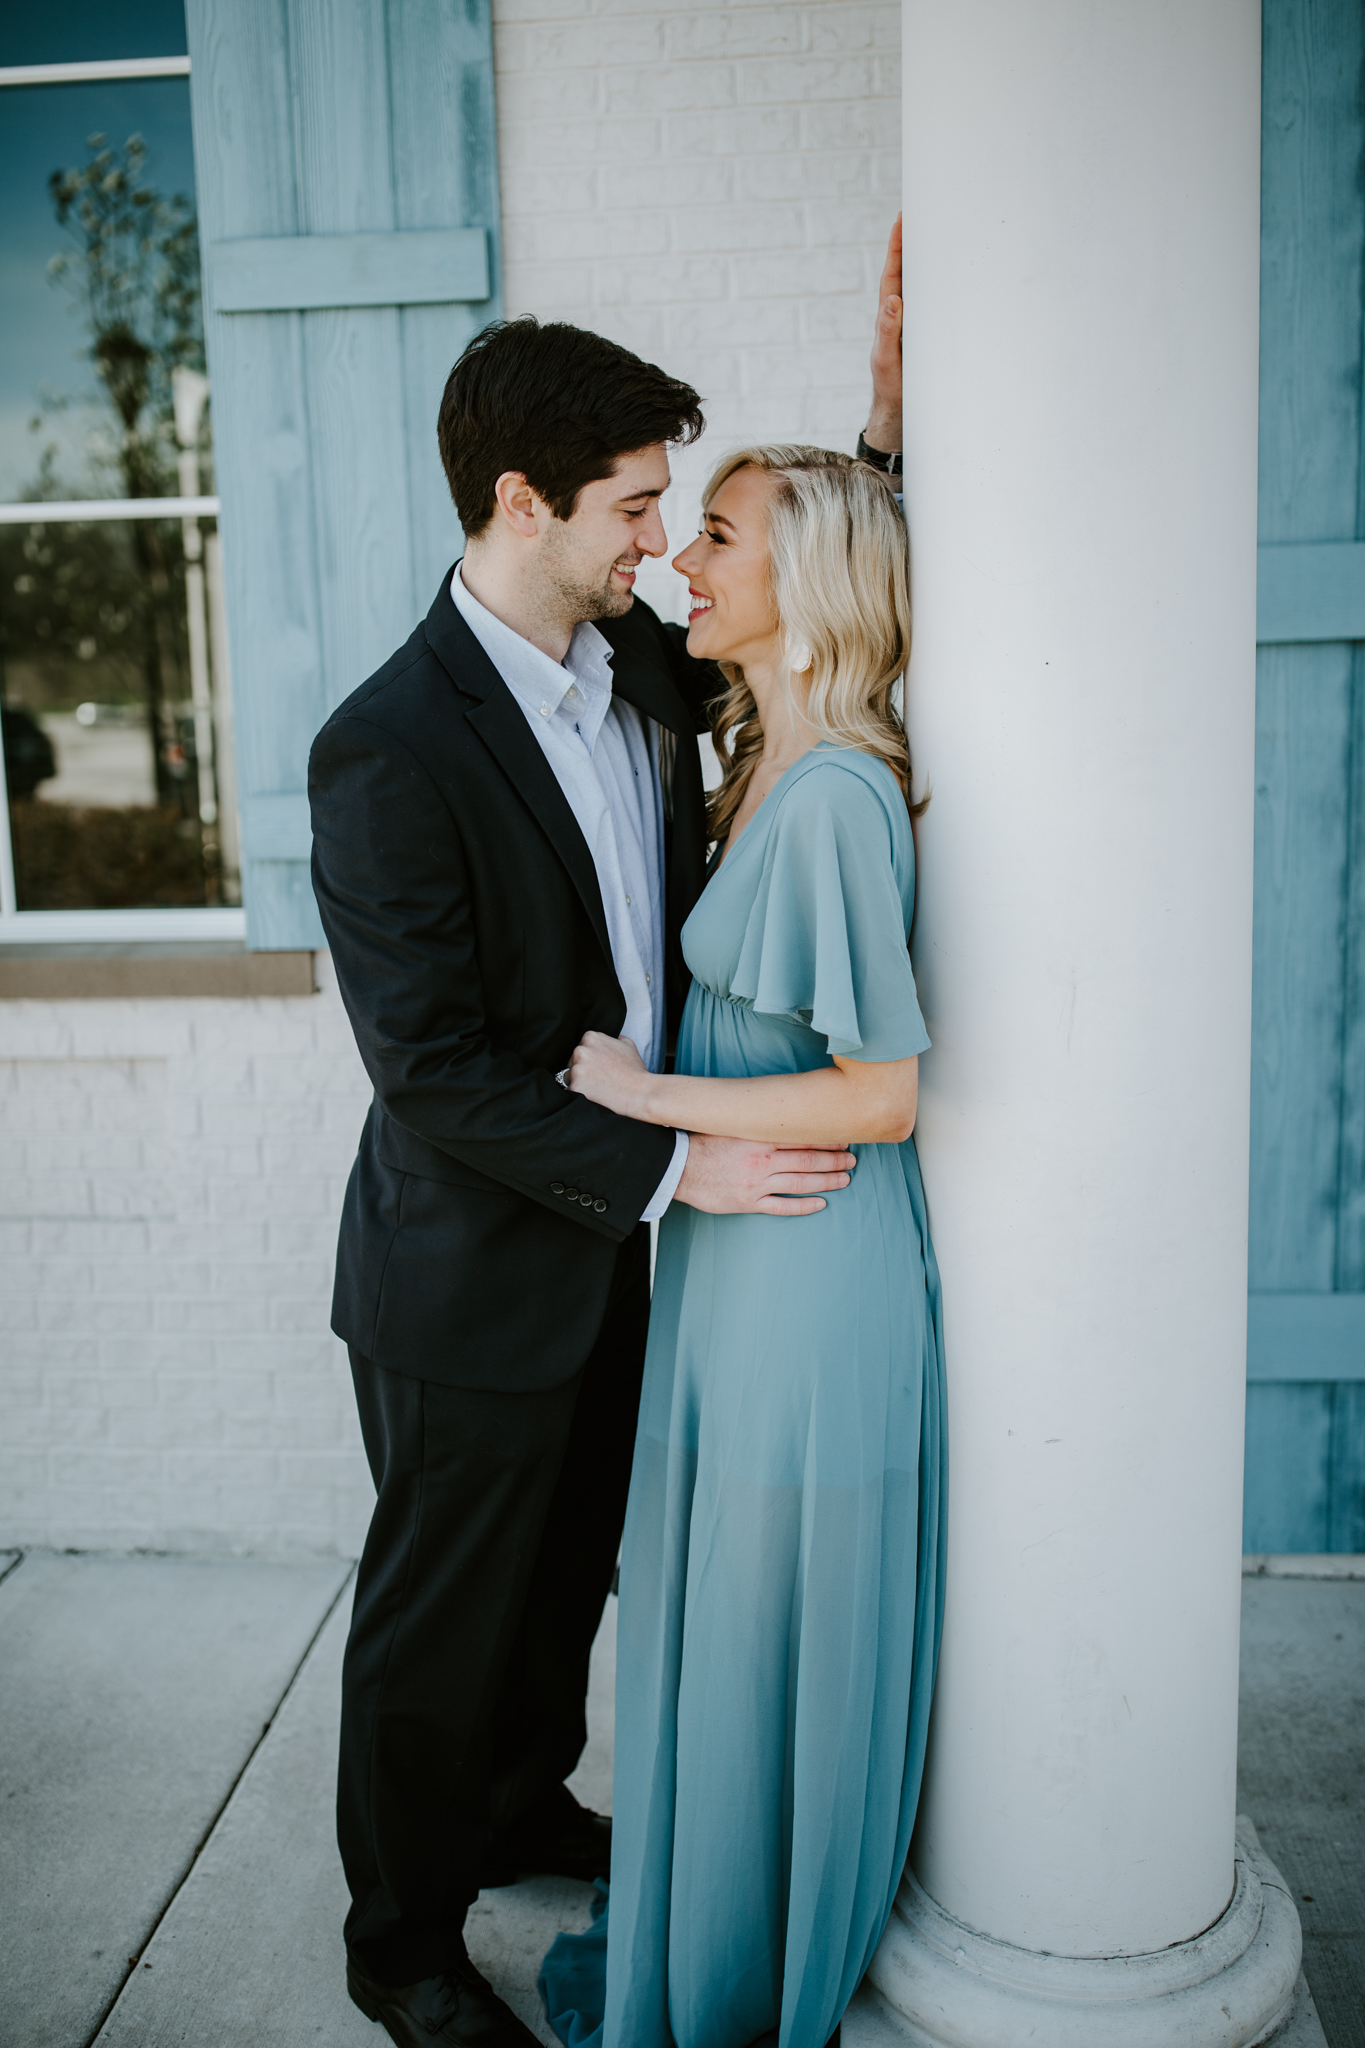 Ali-and-Jake-Chattanooga-Nashville-Tennessee-Wedding-Elopement-Photographer-77.jpg